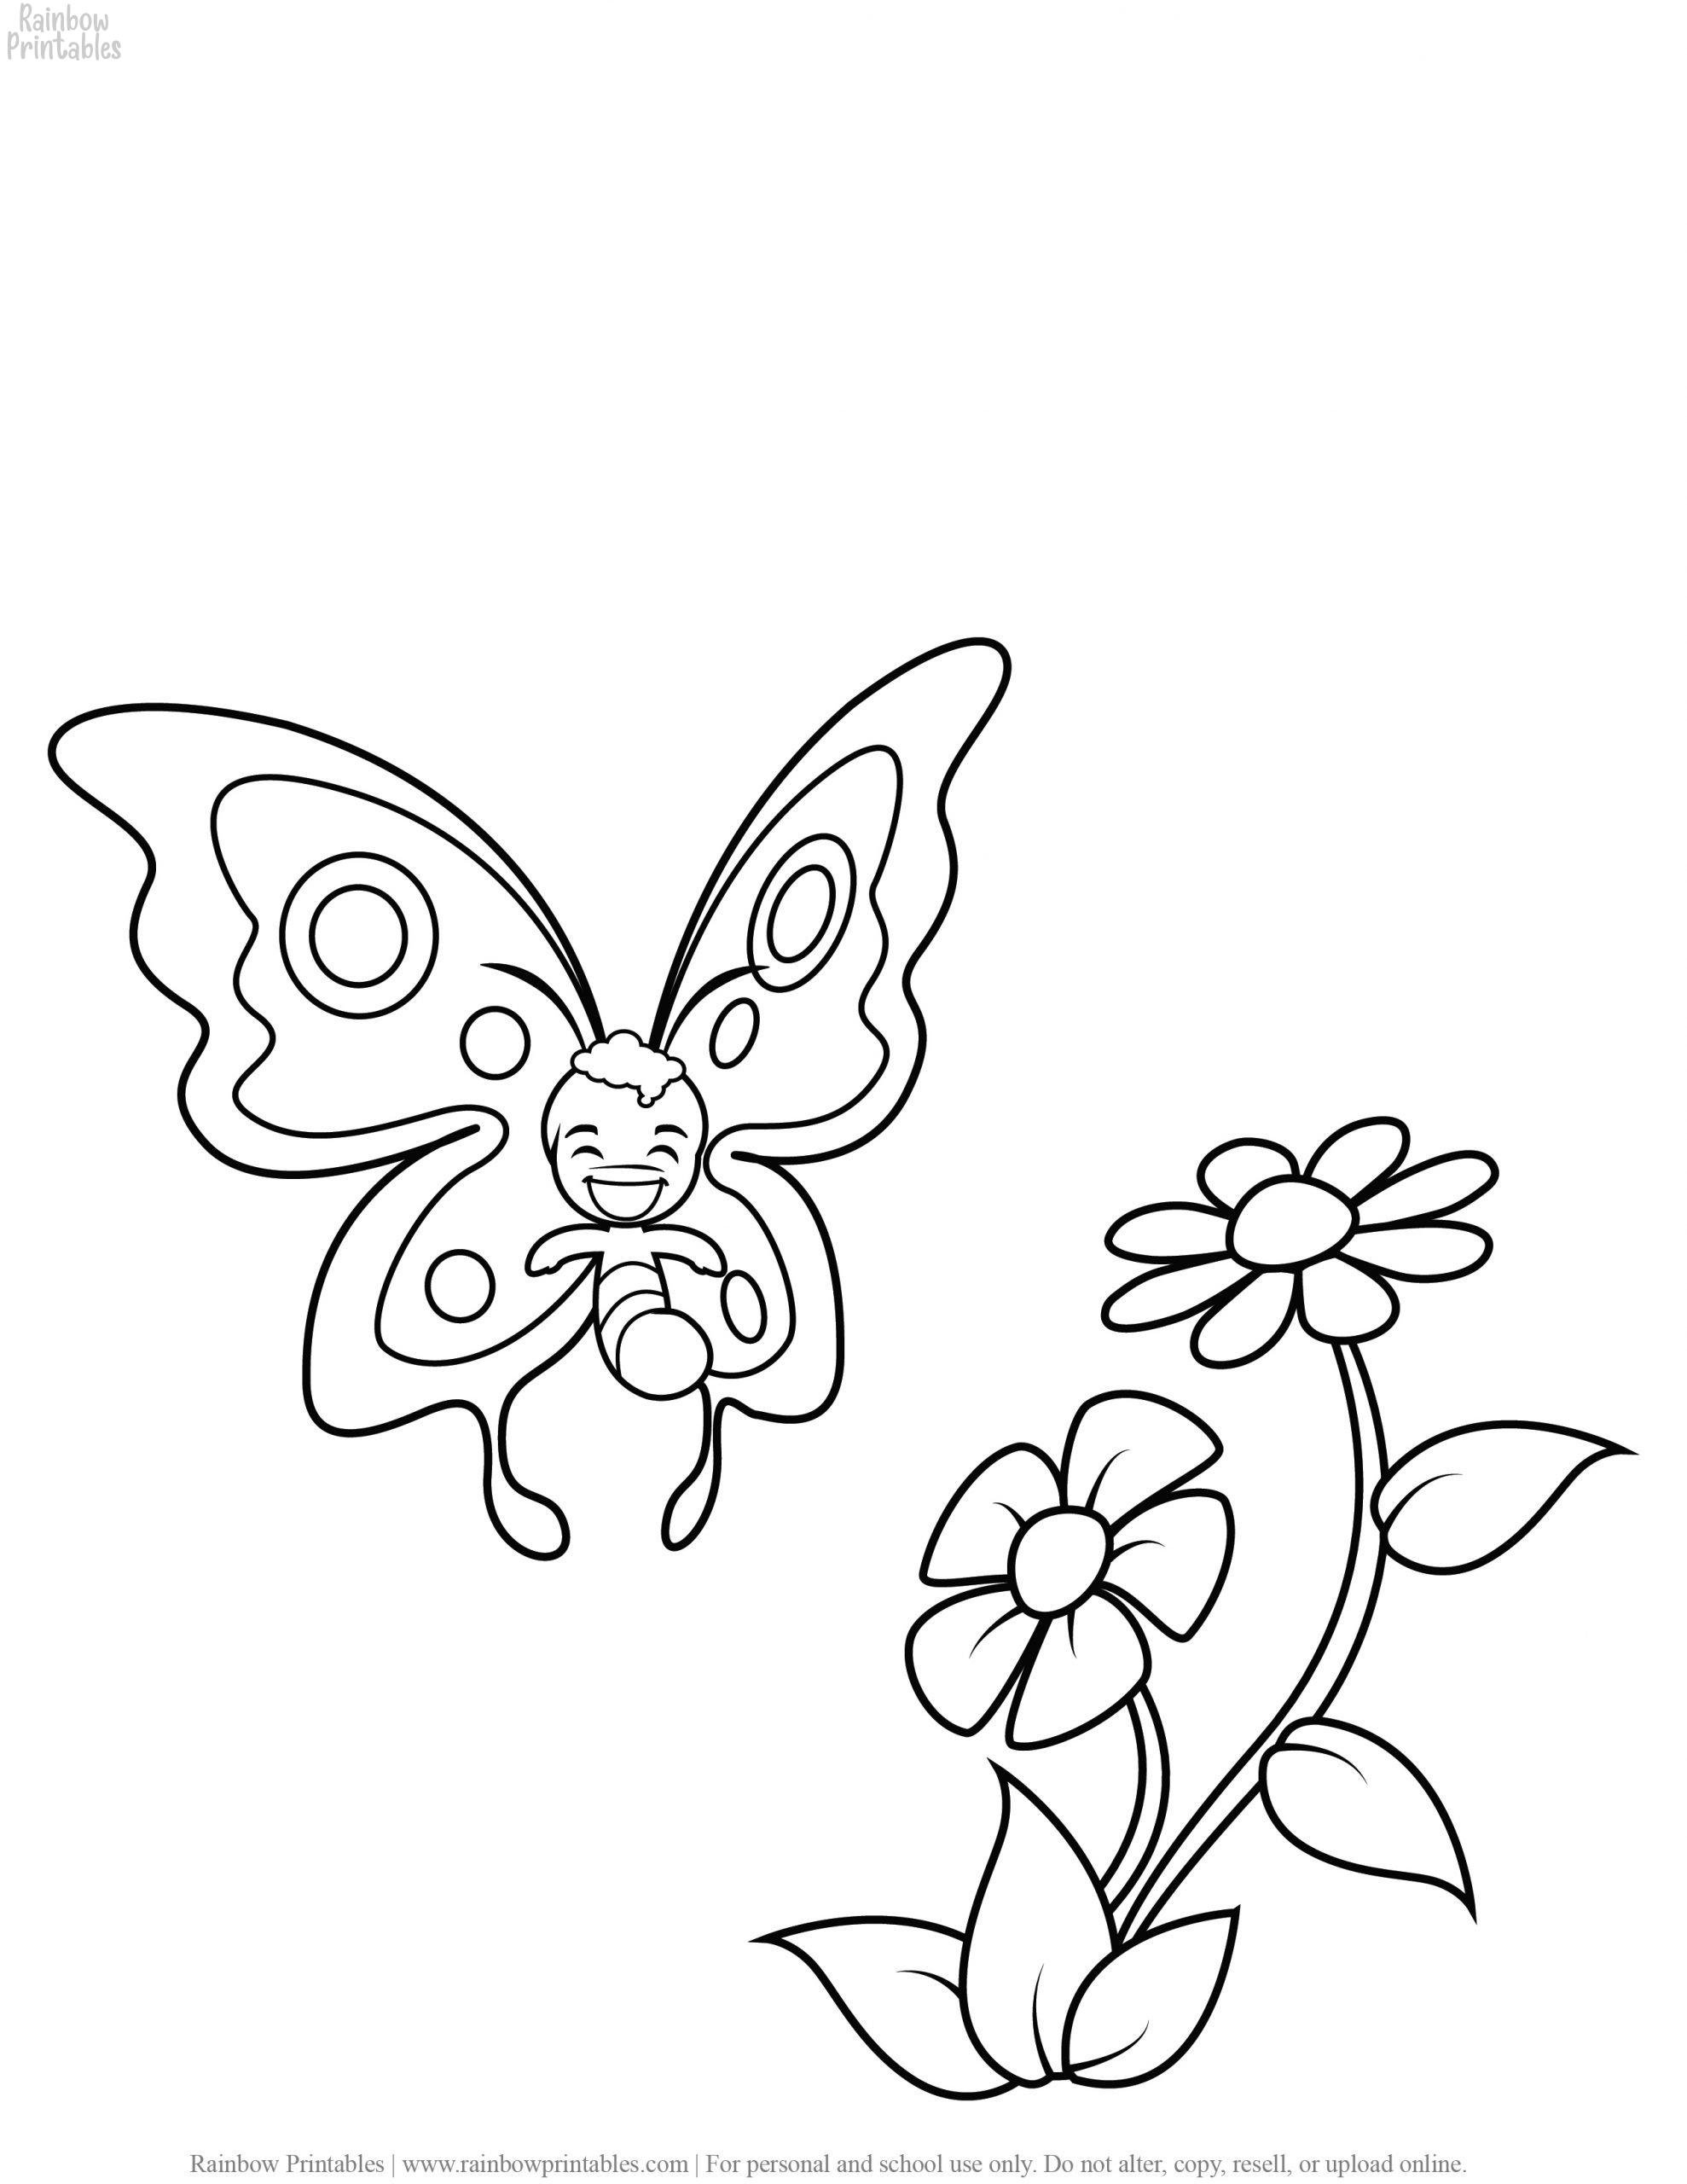 FREE CUTE SPRING TIME BUTTERFLY FLOWERS COLORING PAGES FOR KIDS GIRLS 04 scaled